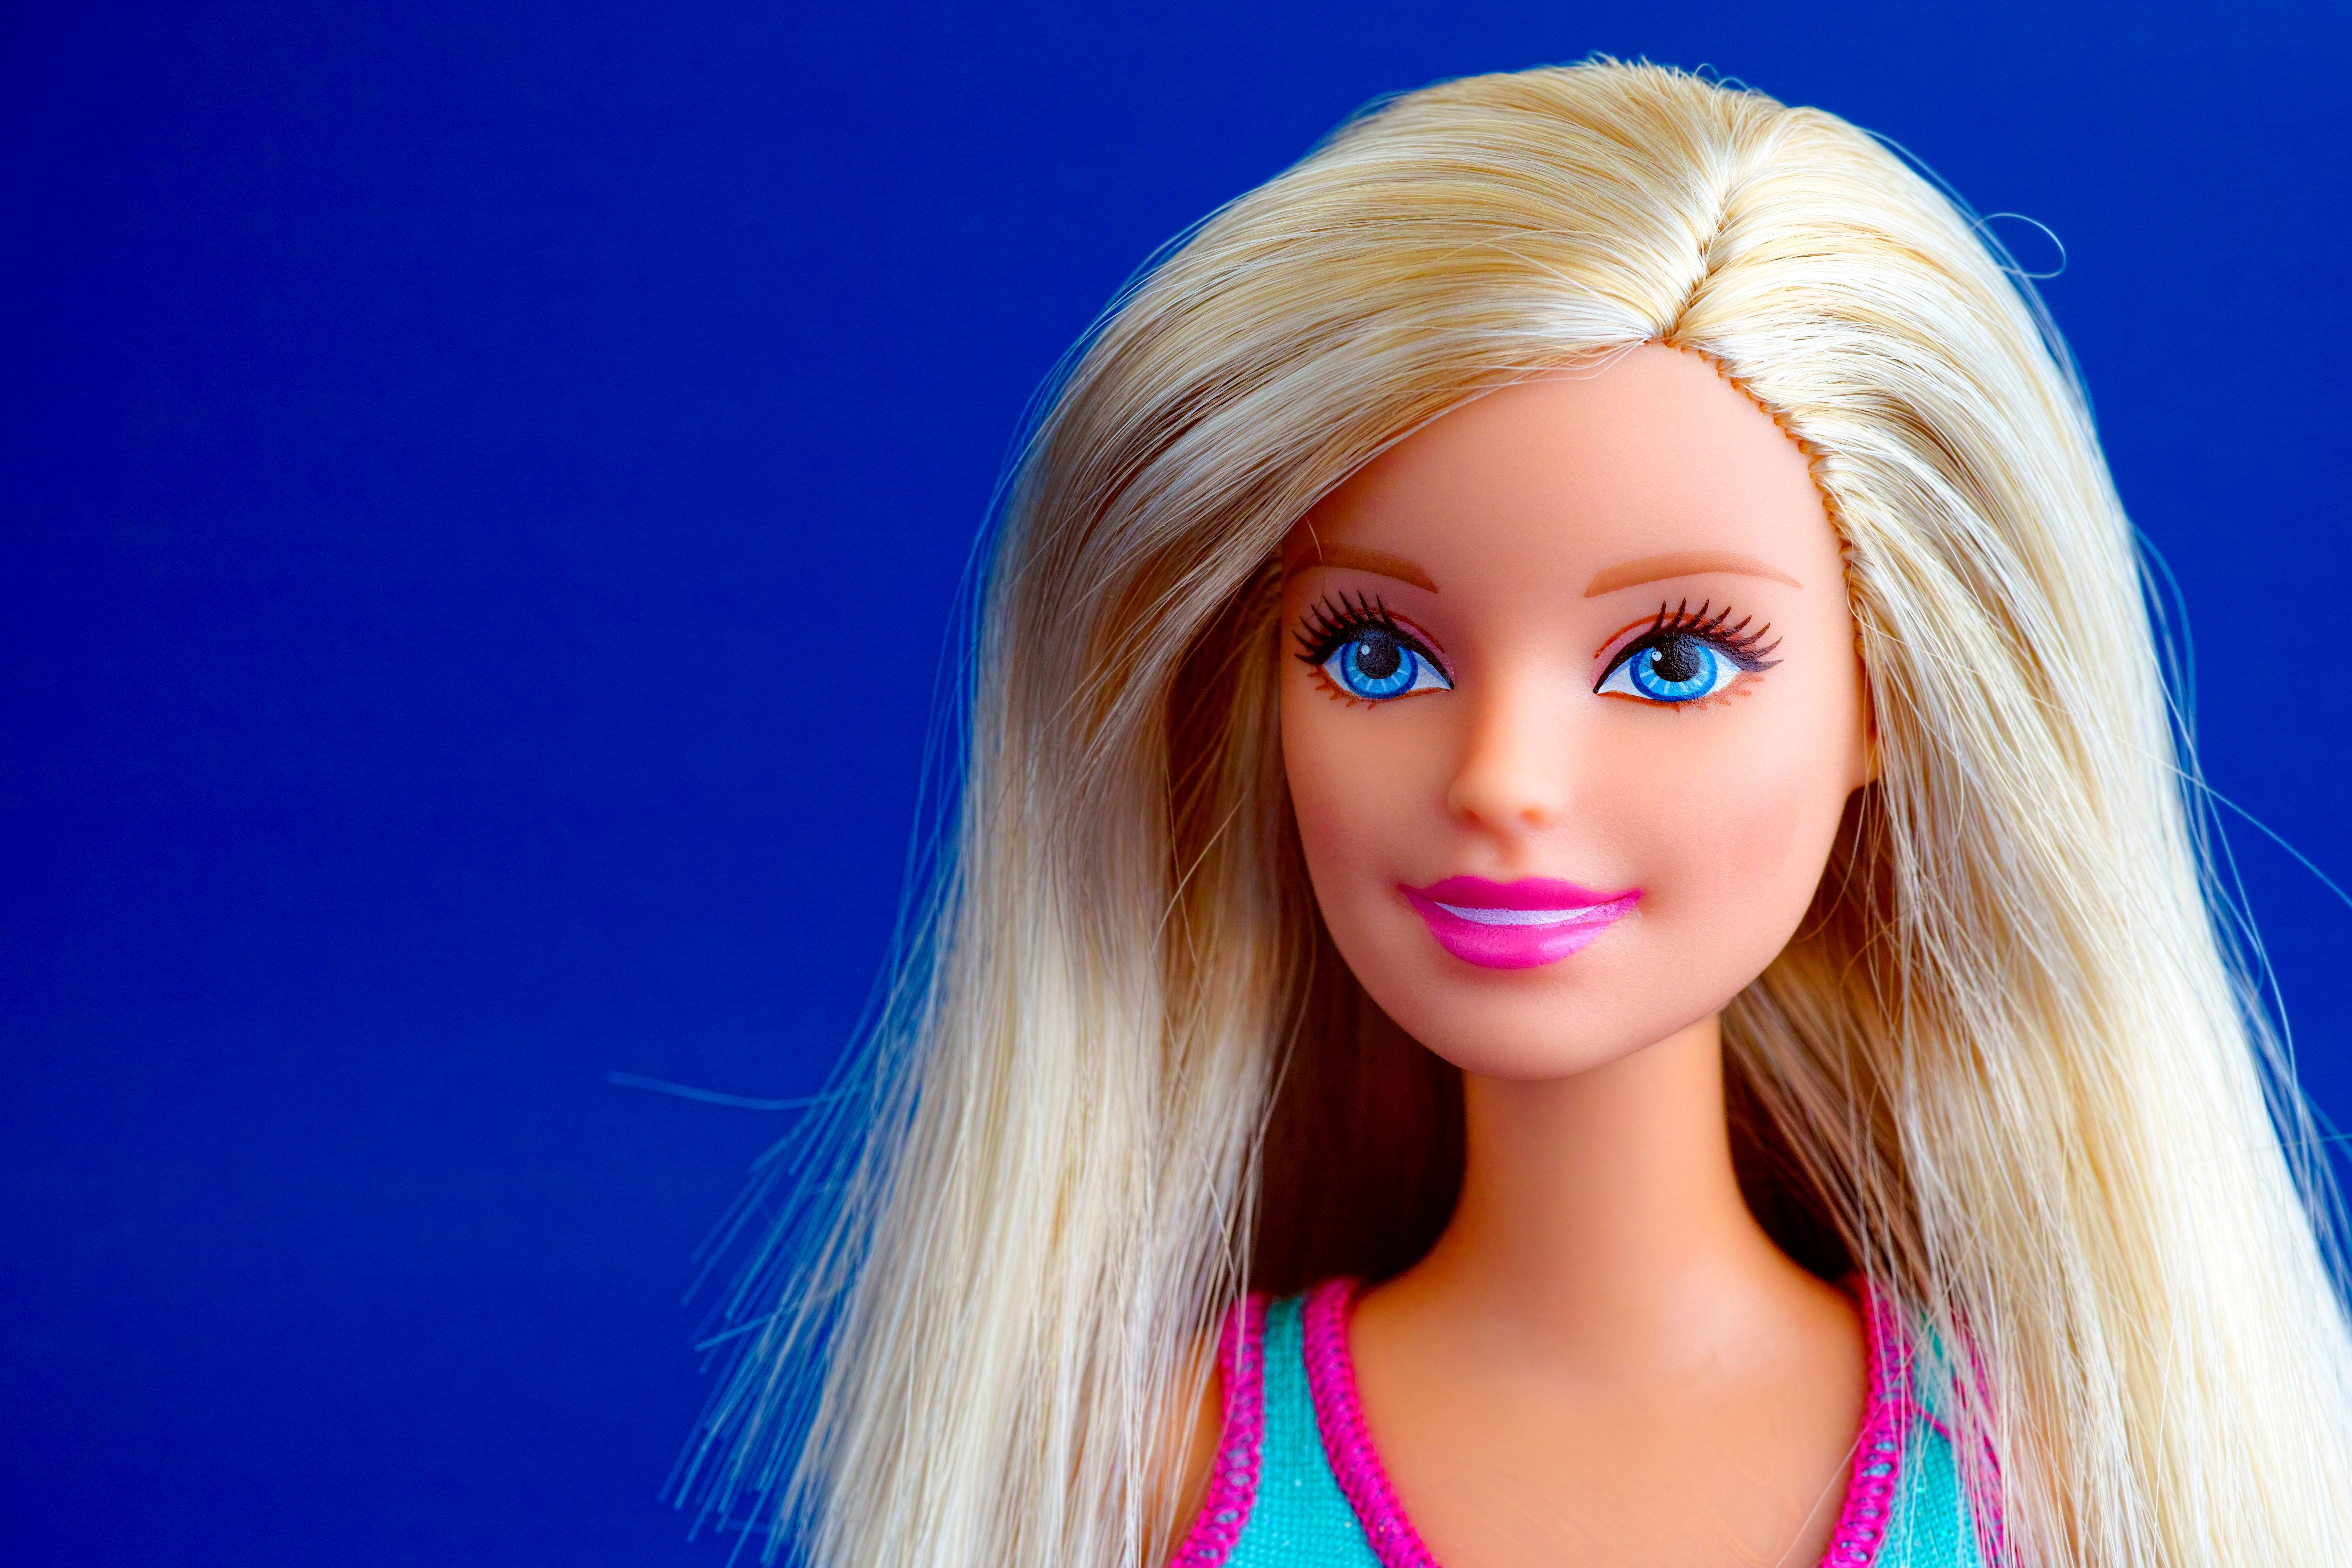 These 12 Rare Barbie Dolls Could Fetch a Lot of Money